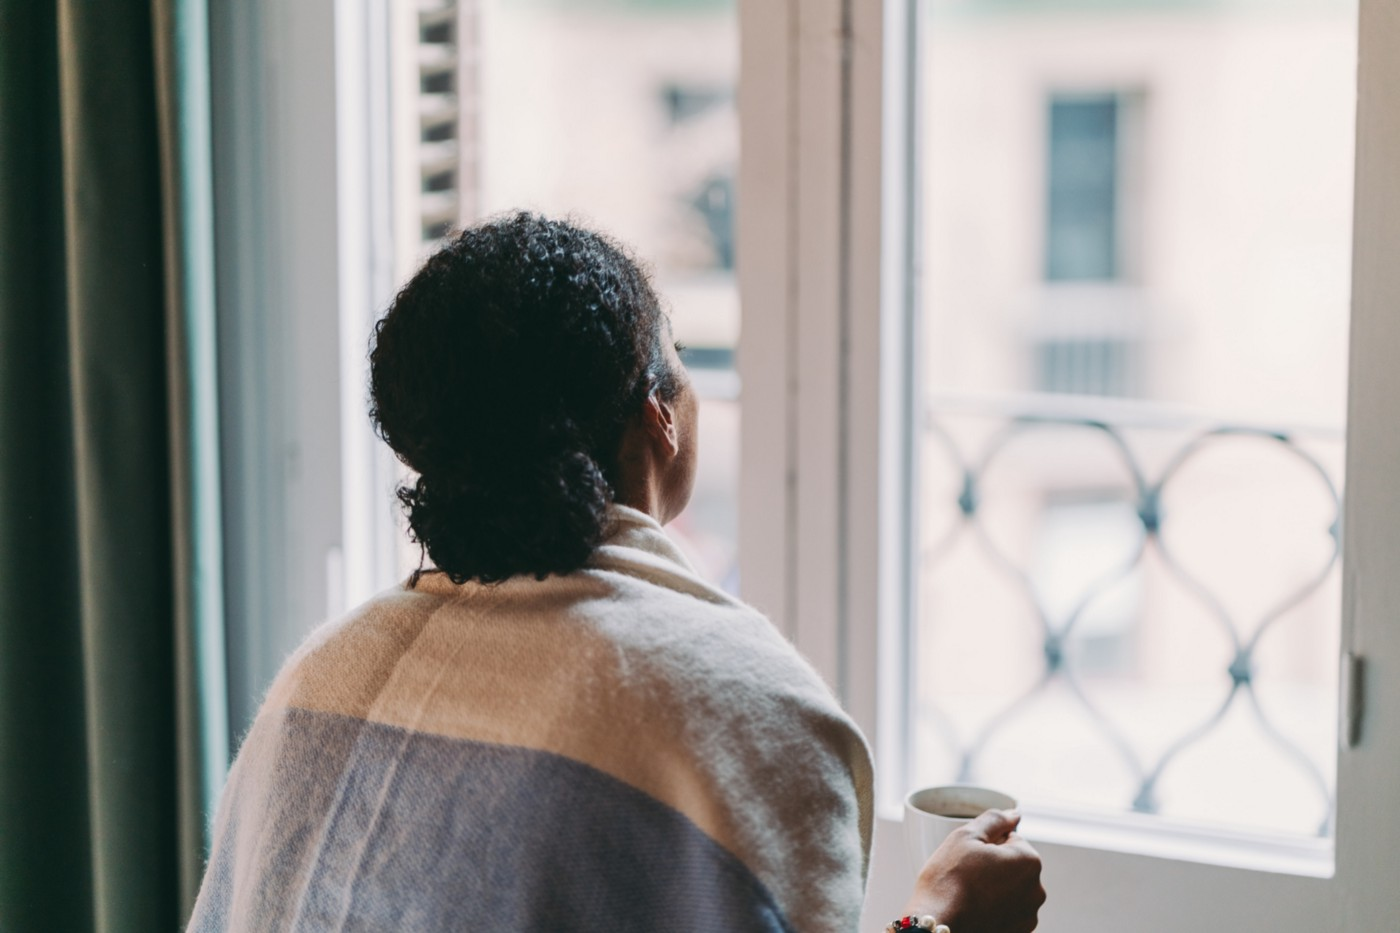 Black woman holding a cup of coffee while looking out her window.